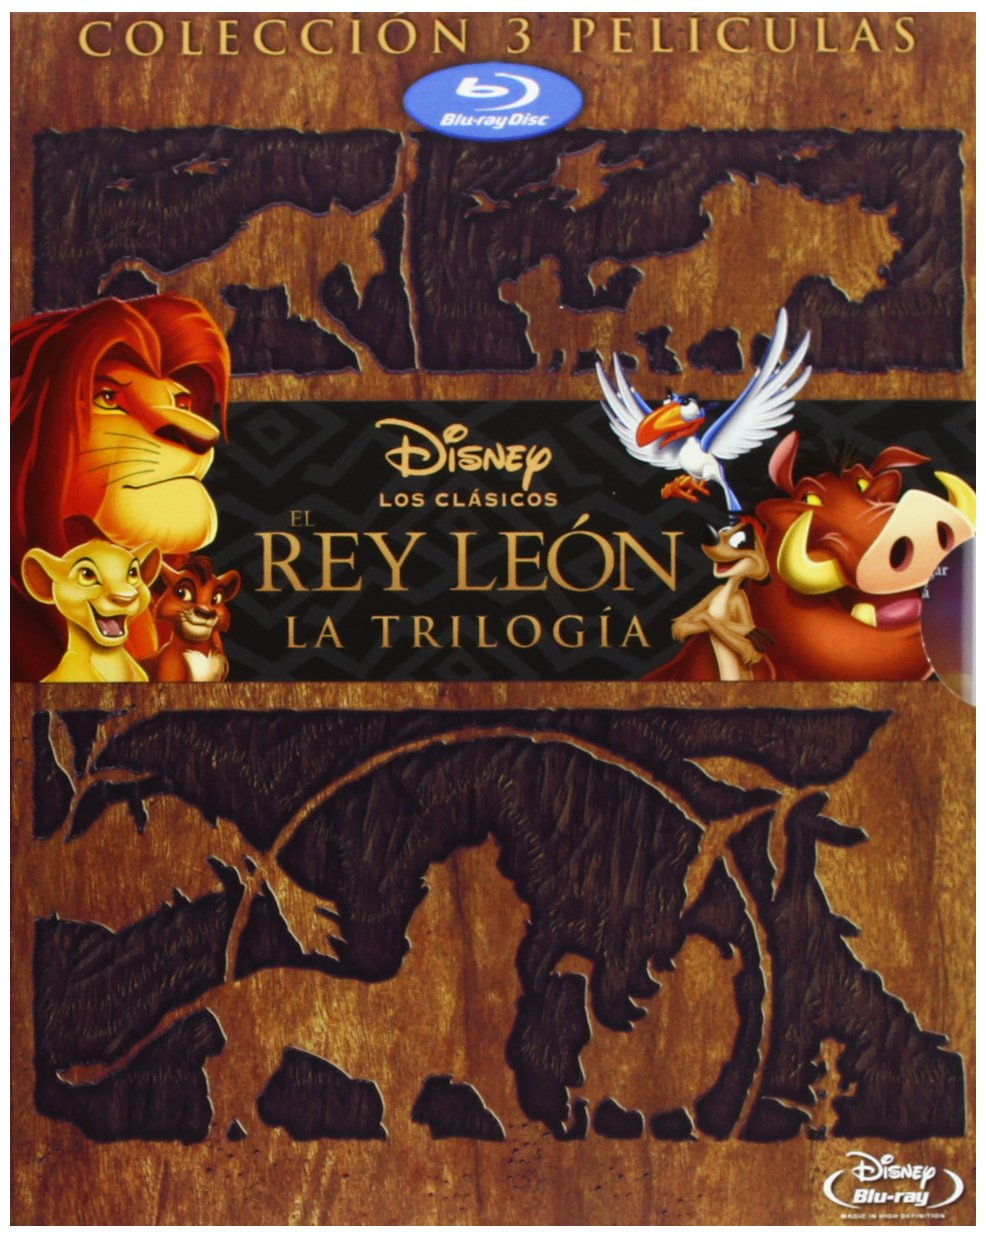 Pack Rey Leon Trilogy Bd [Blu-ray]: Amazon.es: Personajes Animados, Rob Minkoff, Roger Allers, Personajes Animados, Don Hahn, Jeannine Roussel: Cine y Series TV